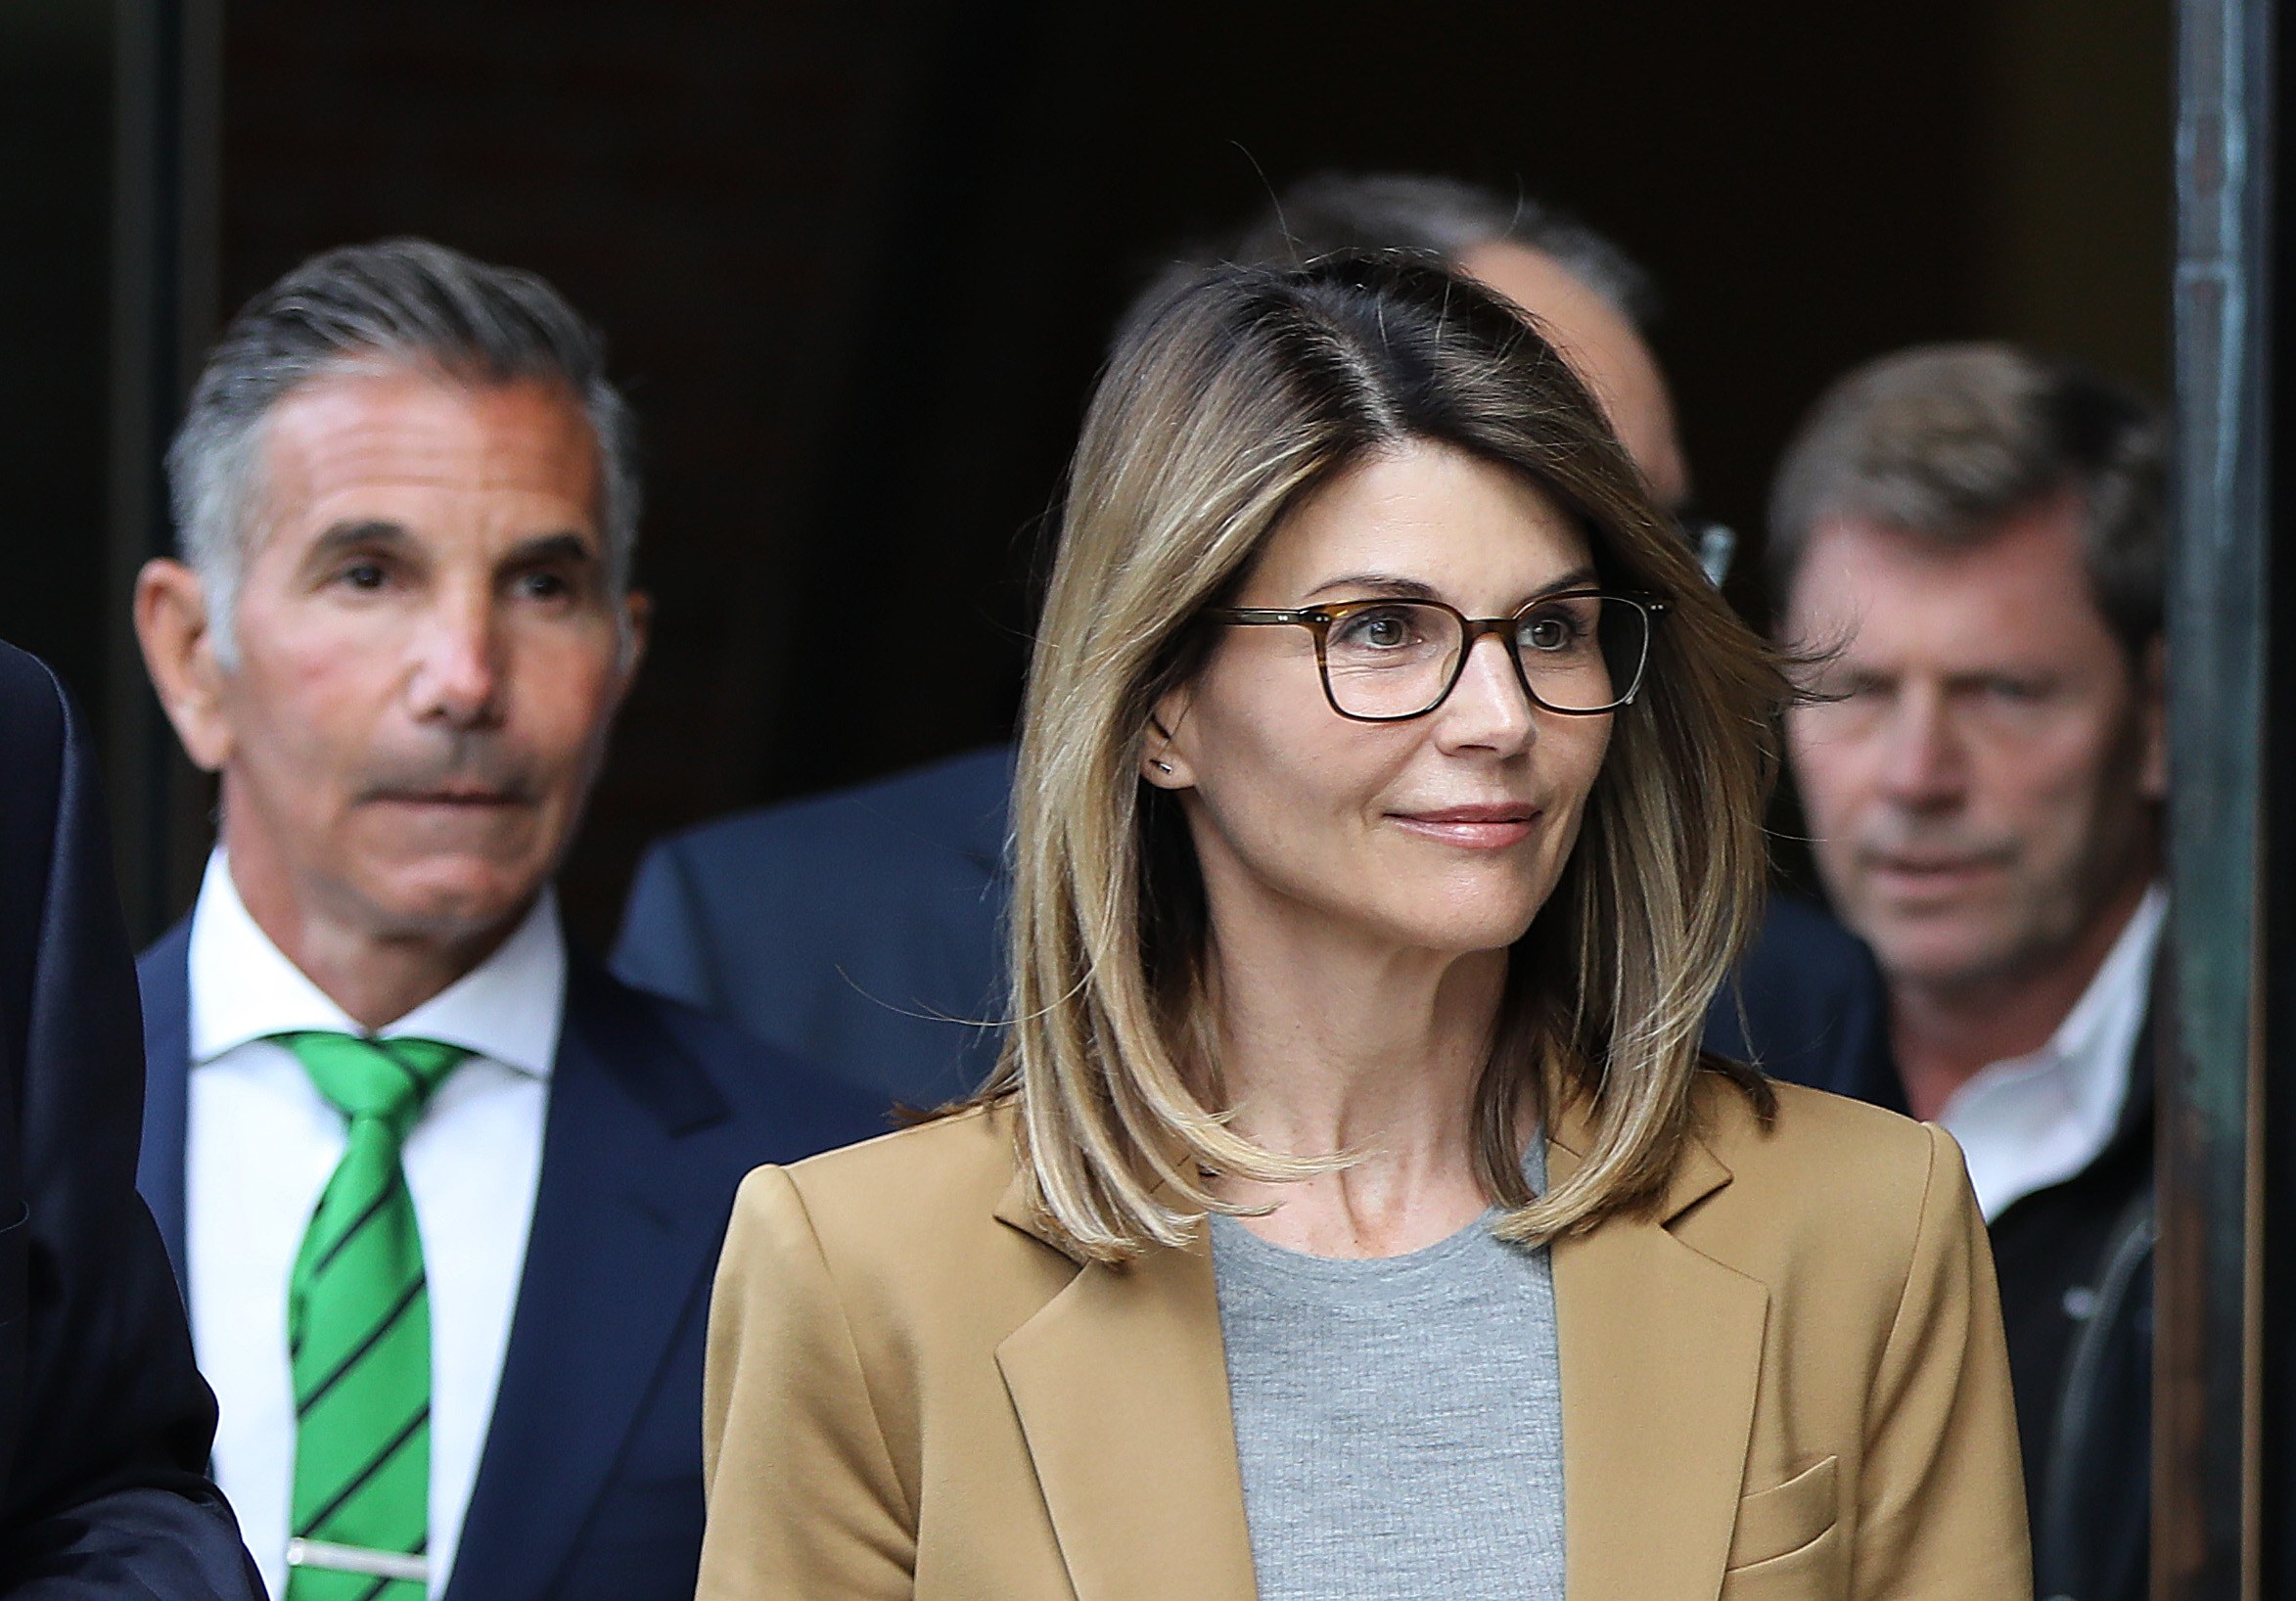 Lori Loughlin Might Face a Legal Dispute with USC Next